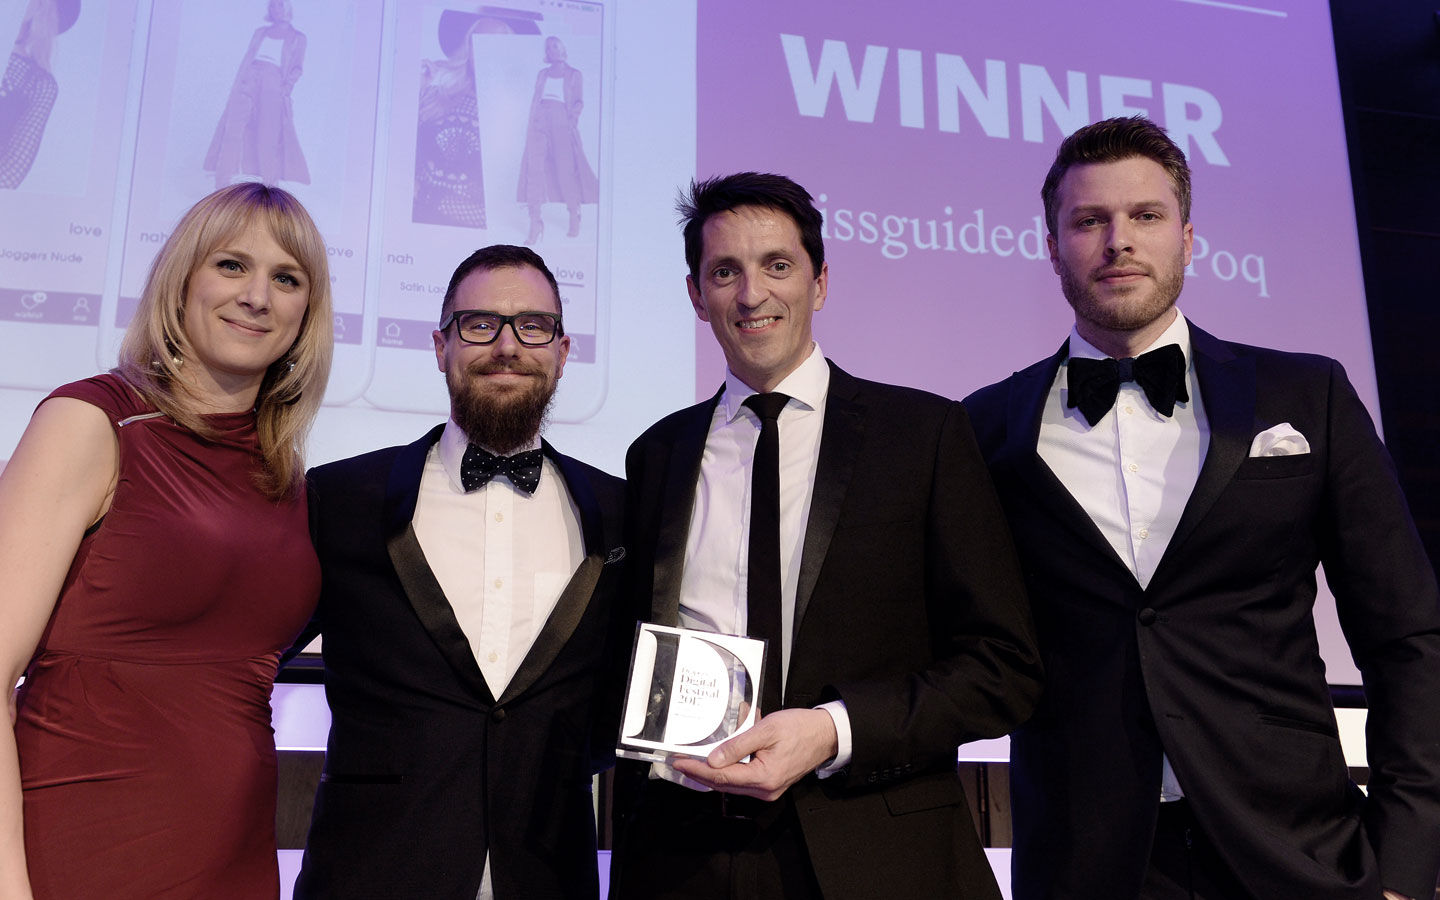 Missguided Best App Drapers award | Poq - the app commerce company